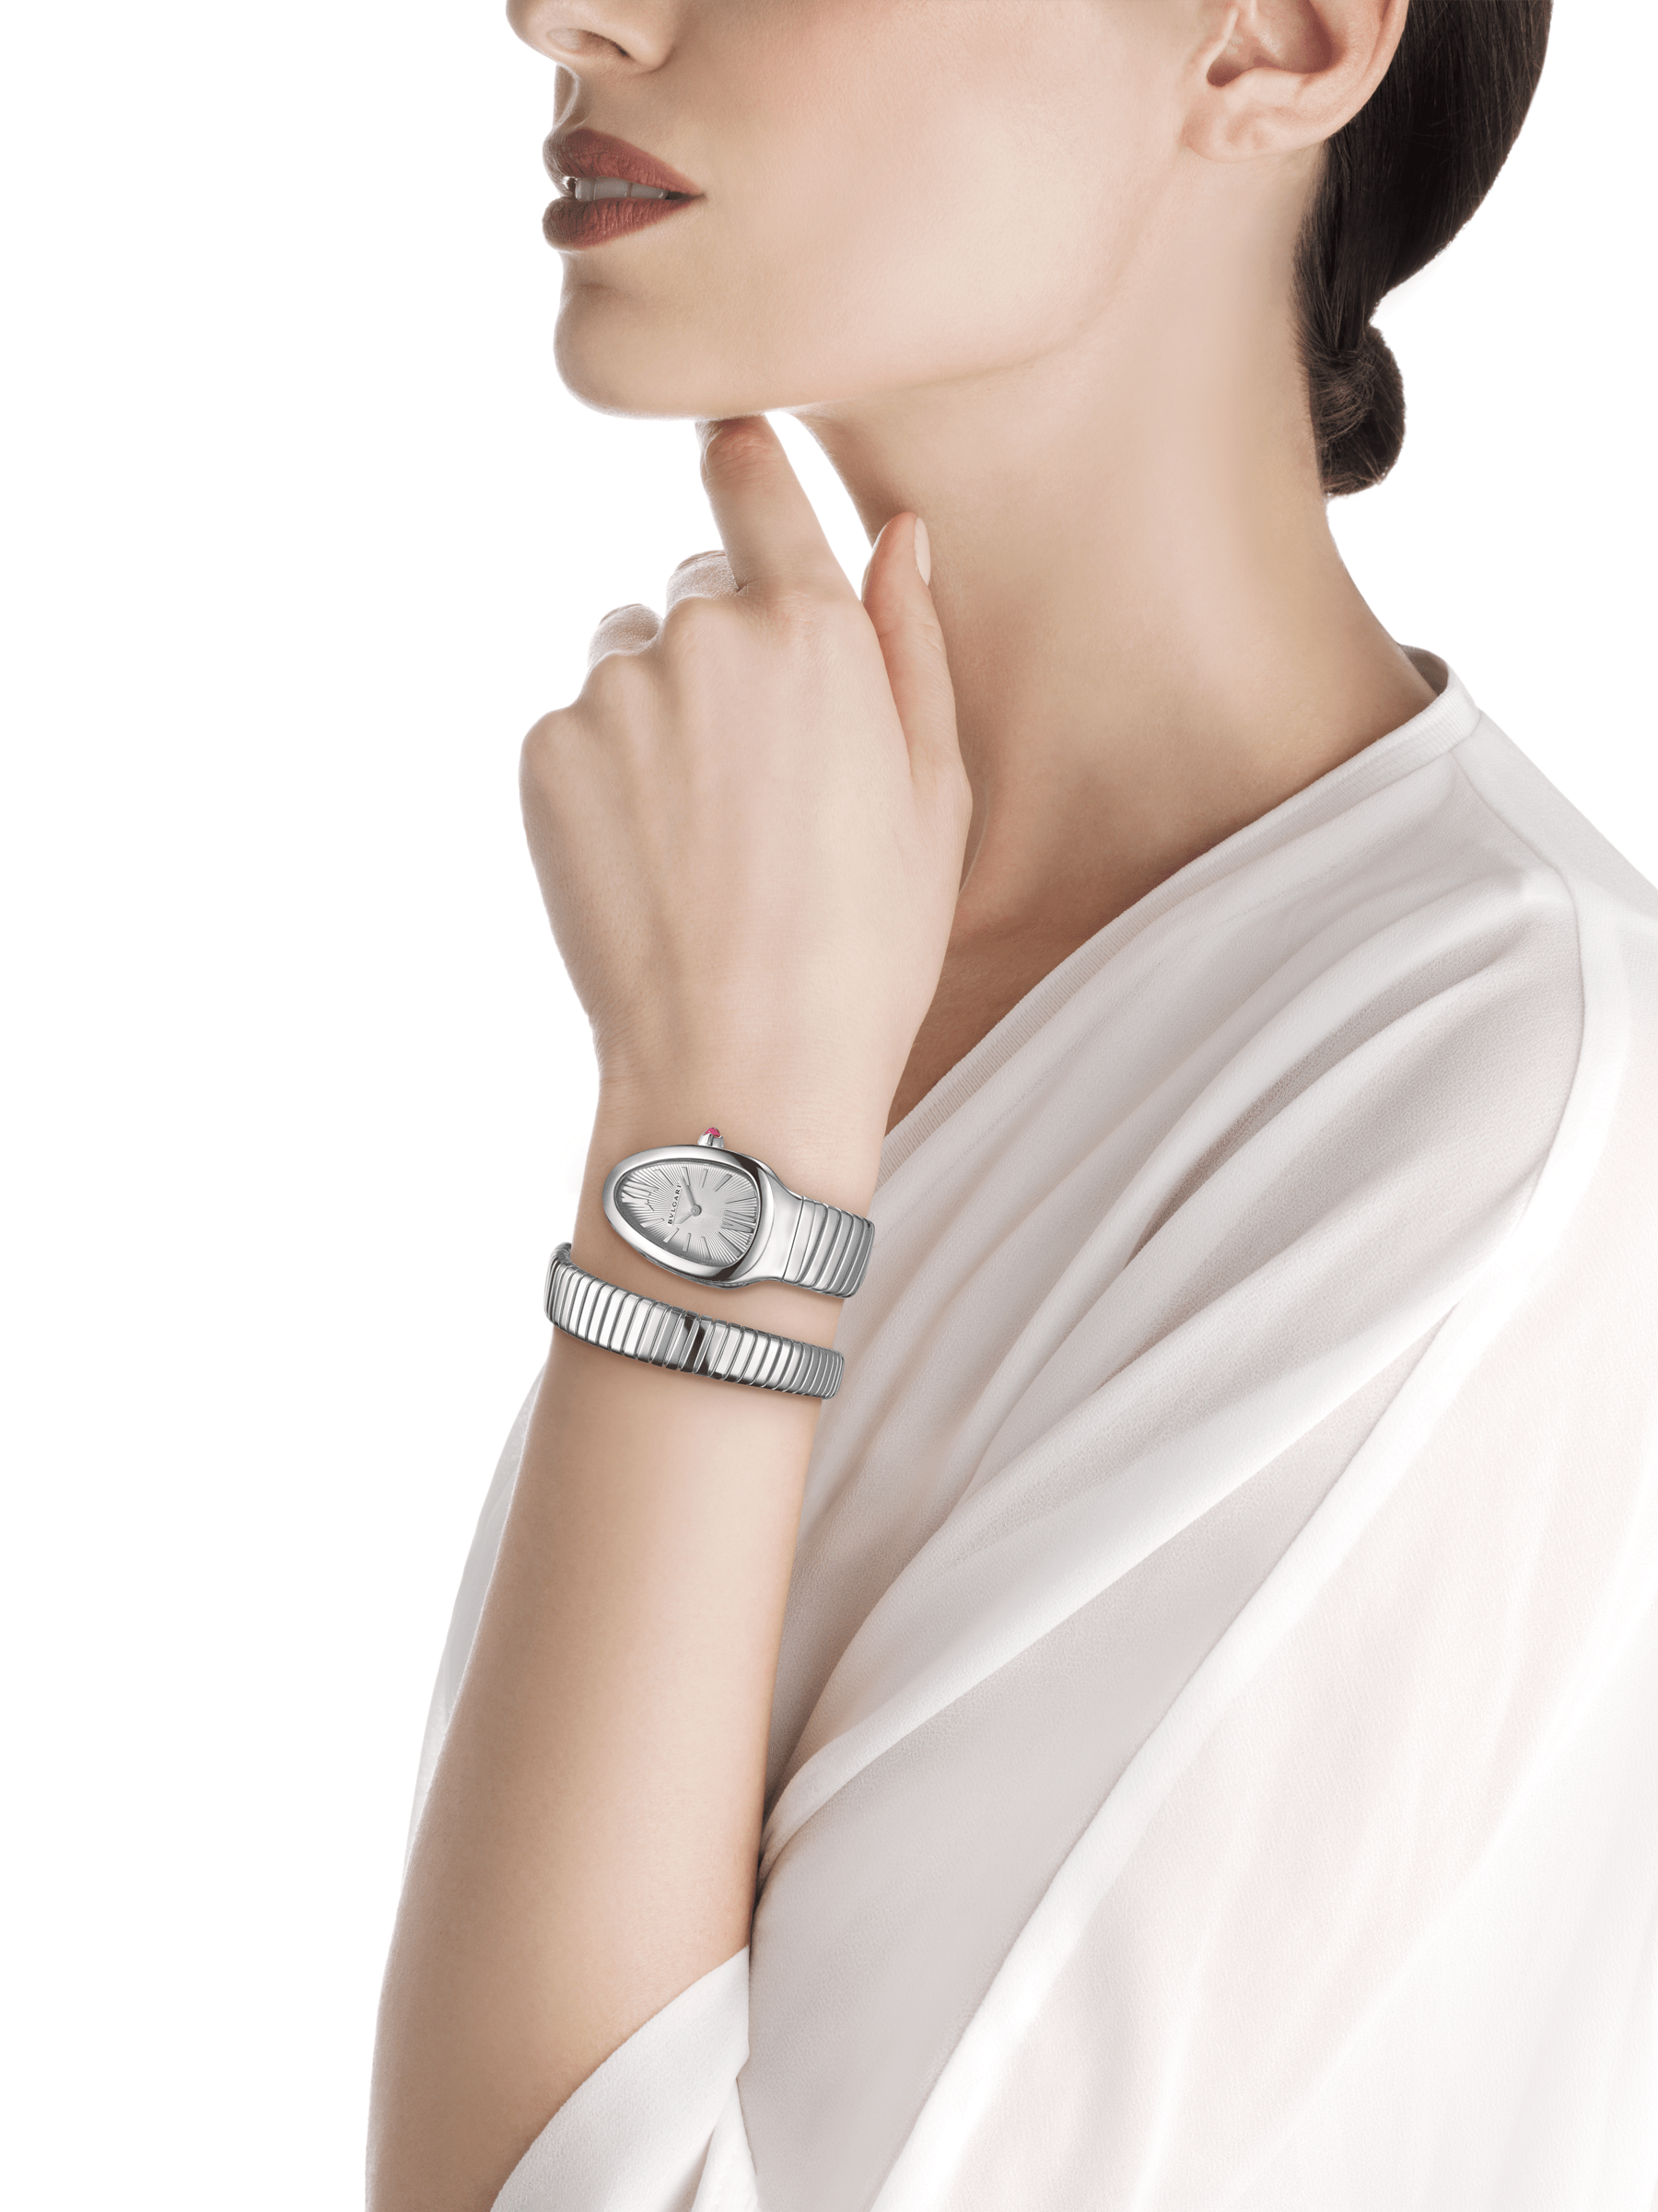 Serpenti Tubogas single spiral watch in stainless steel case and bracelet, with silver opaline dial. Large size. SrpntTubogas-white-dial1 image 4